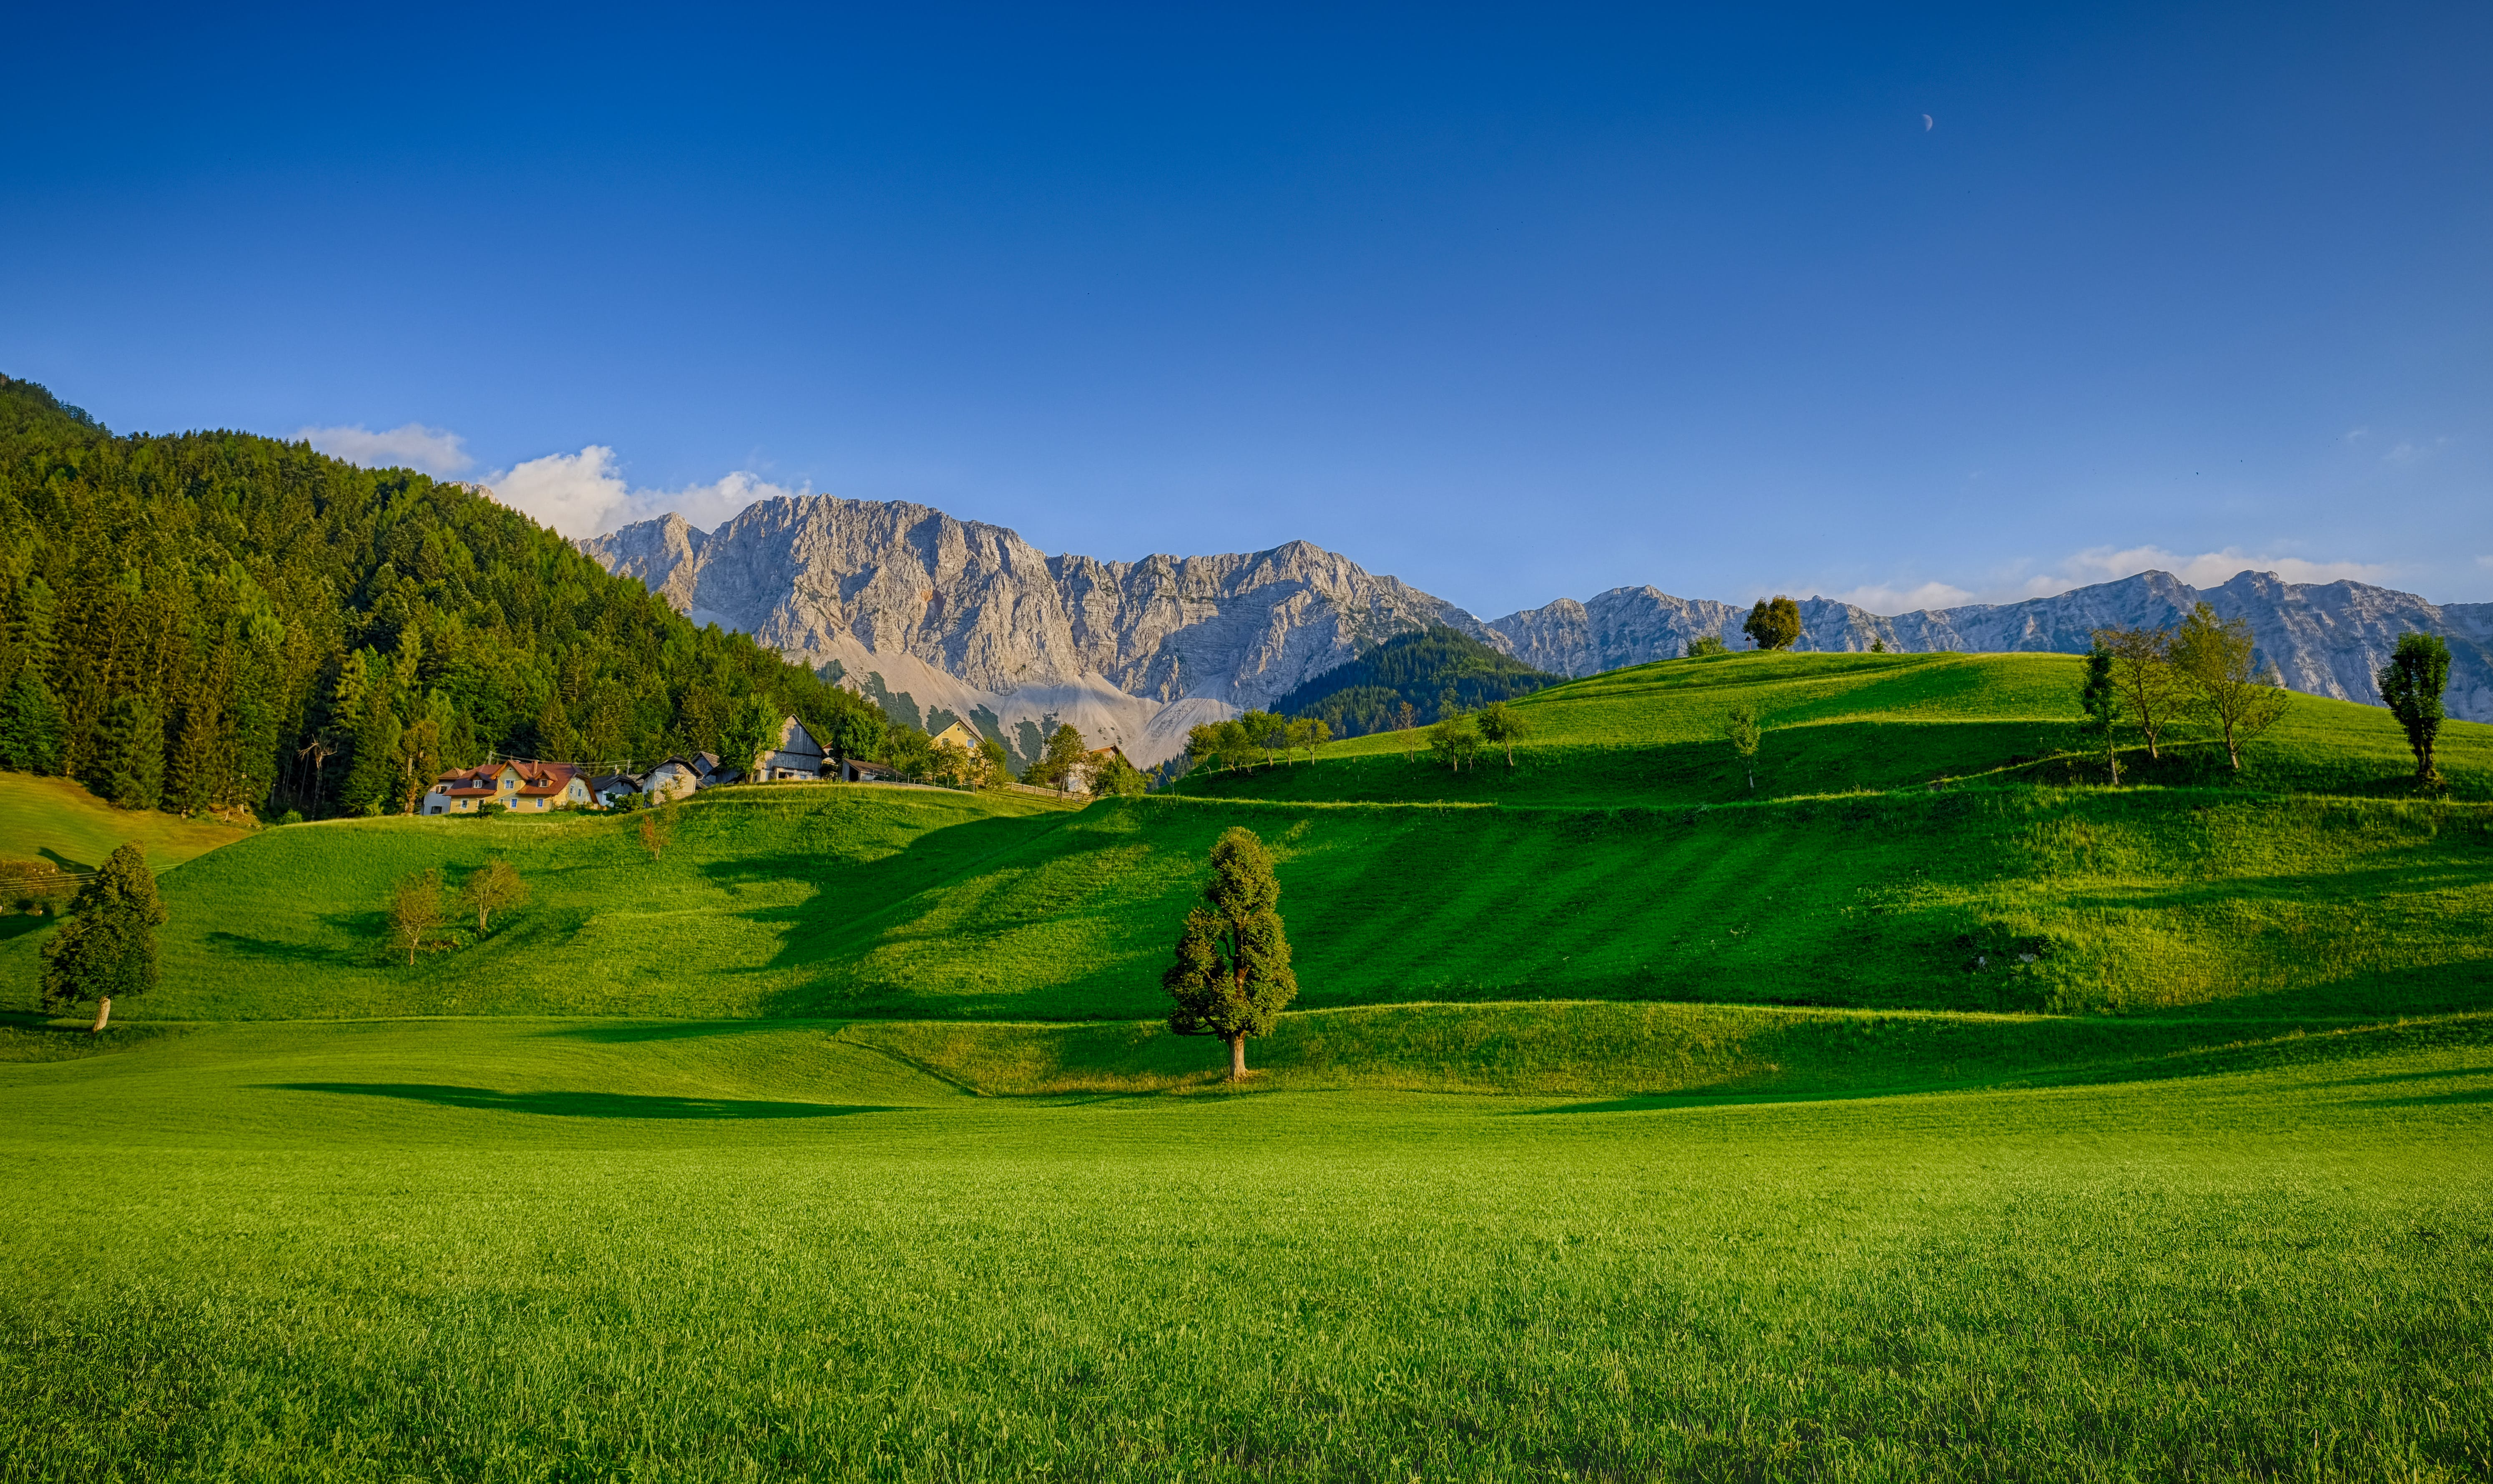 Landscape Photography Of Green Grass Field